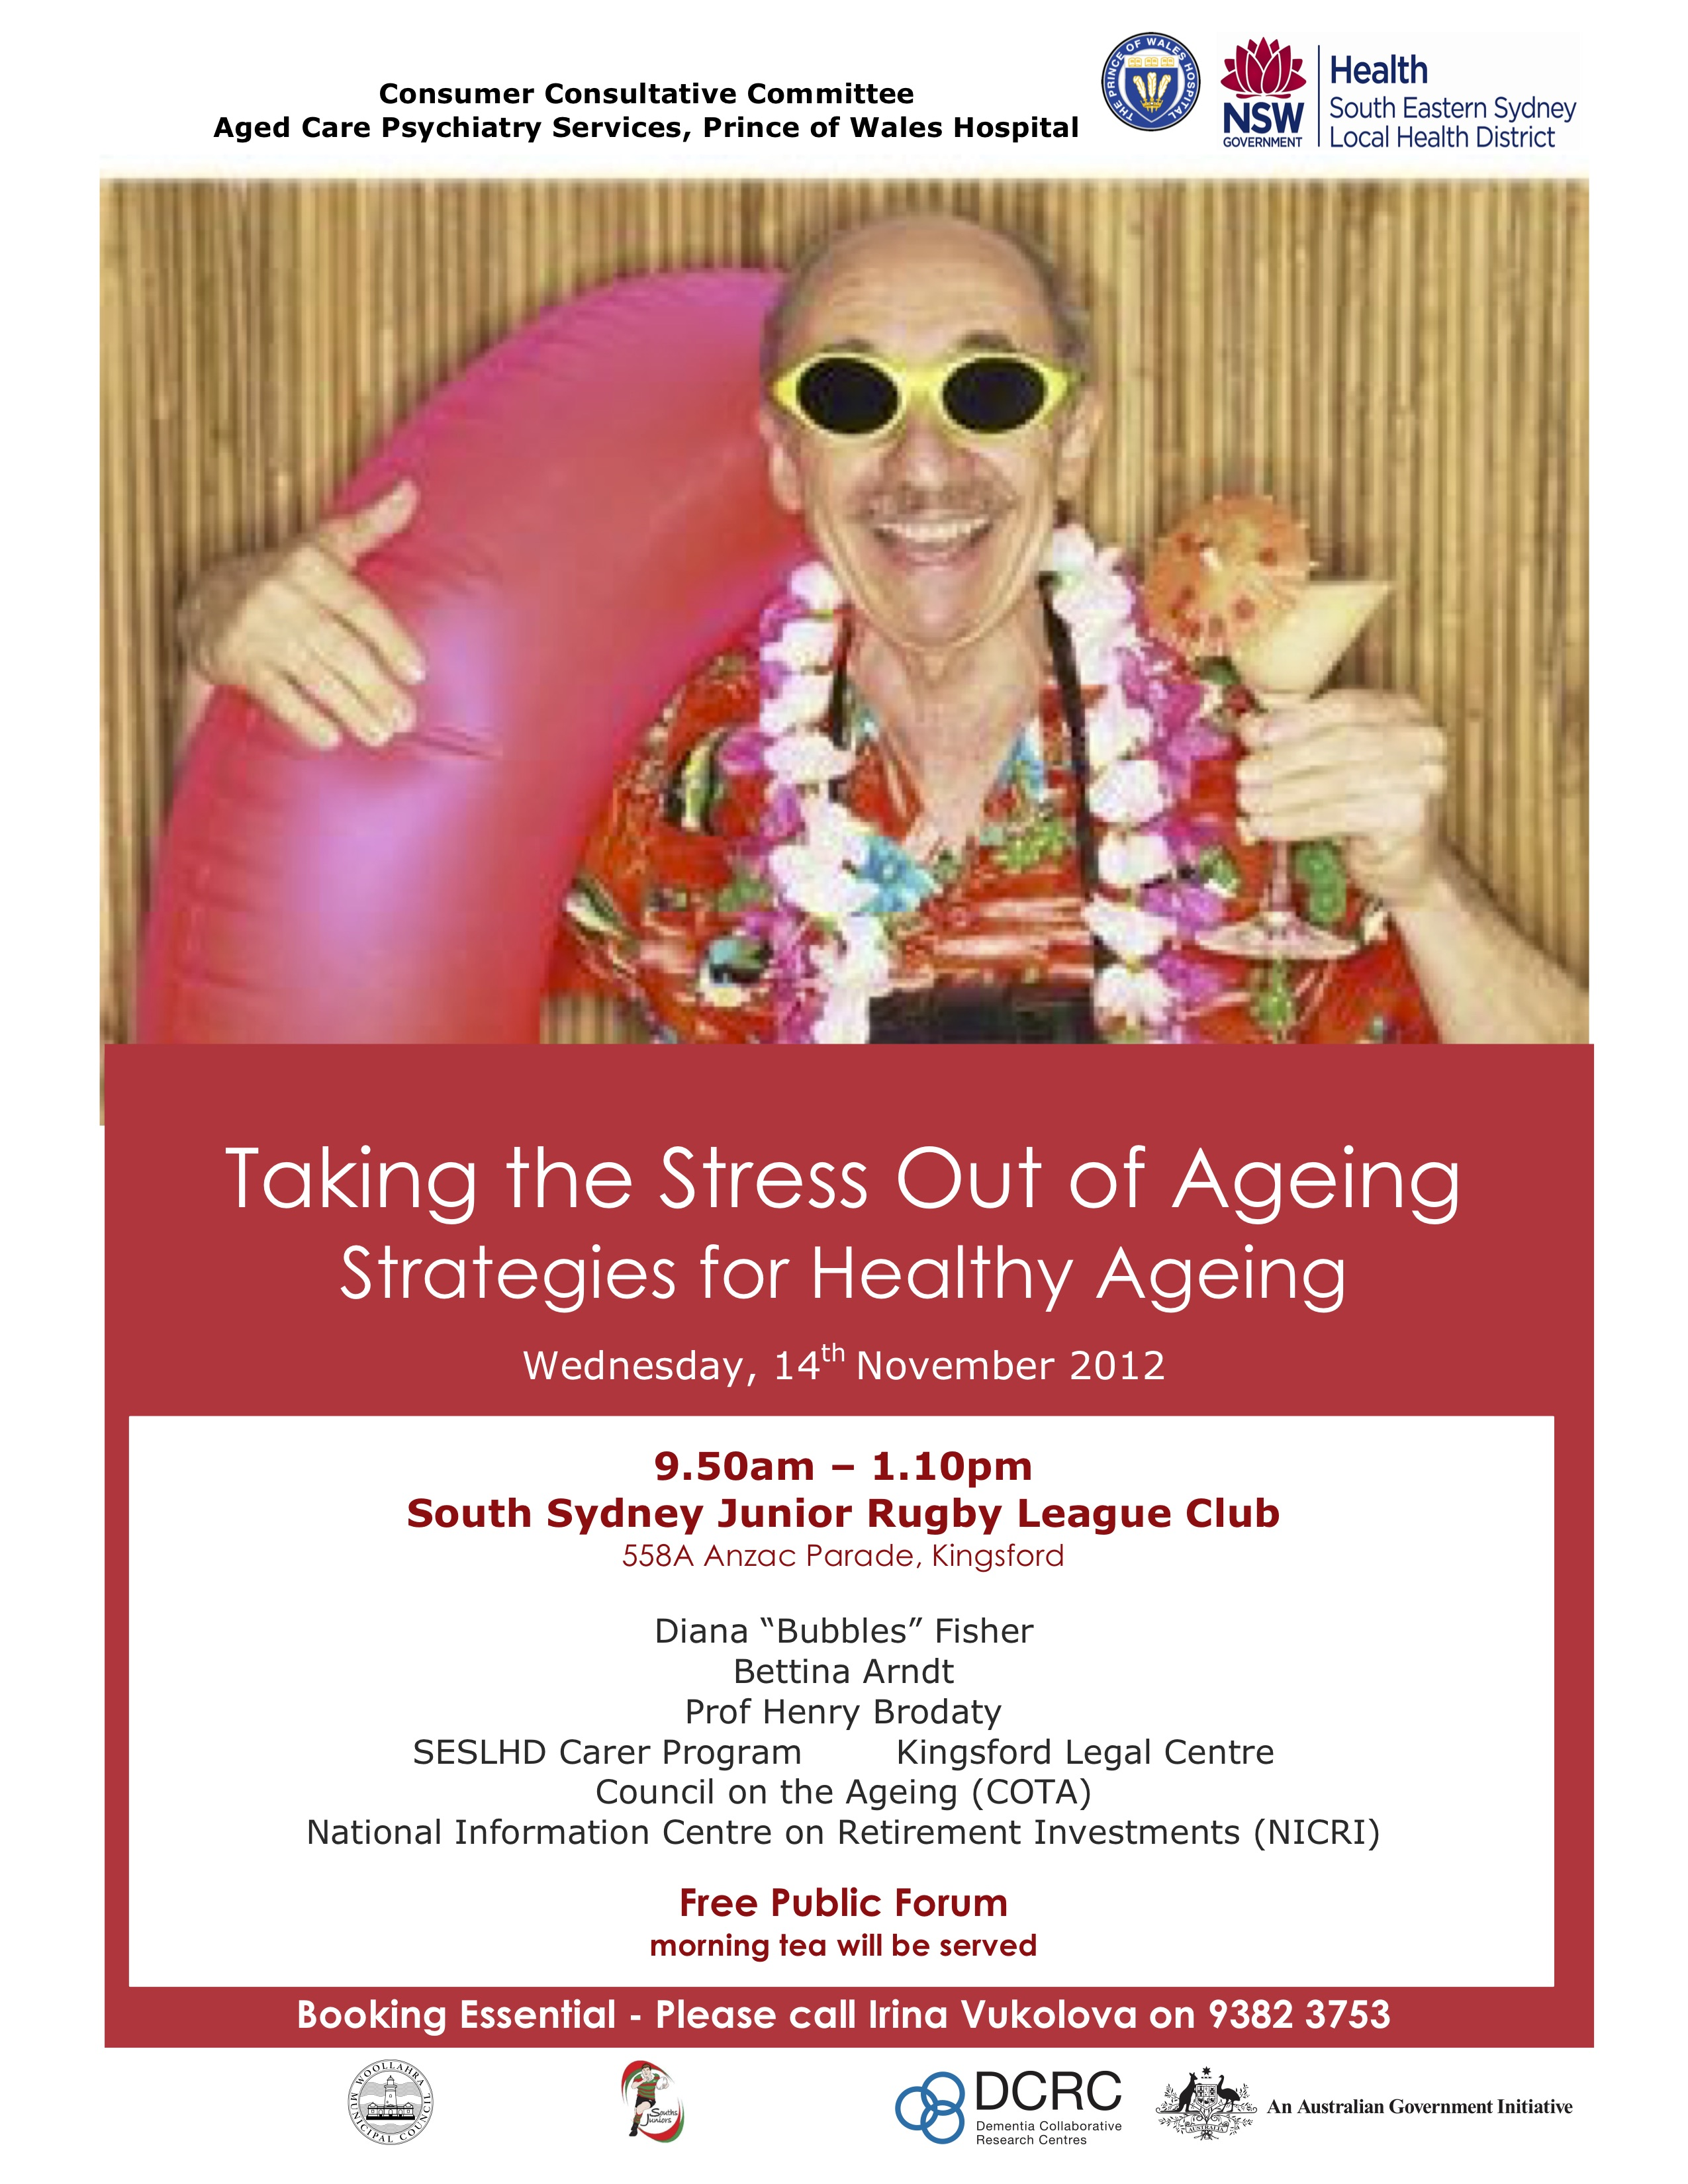 2012 TAKING THE STRESS OUT OF AGEING Strategies for Healthy Ageing.jpg